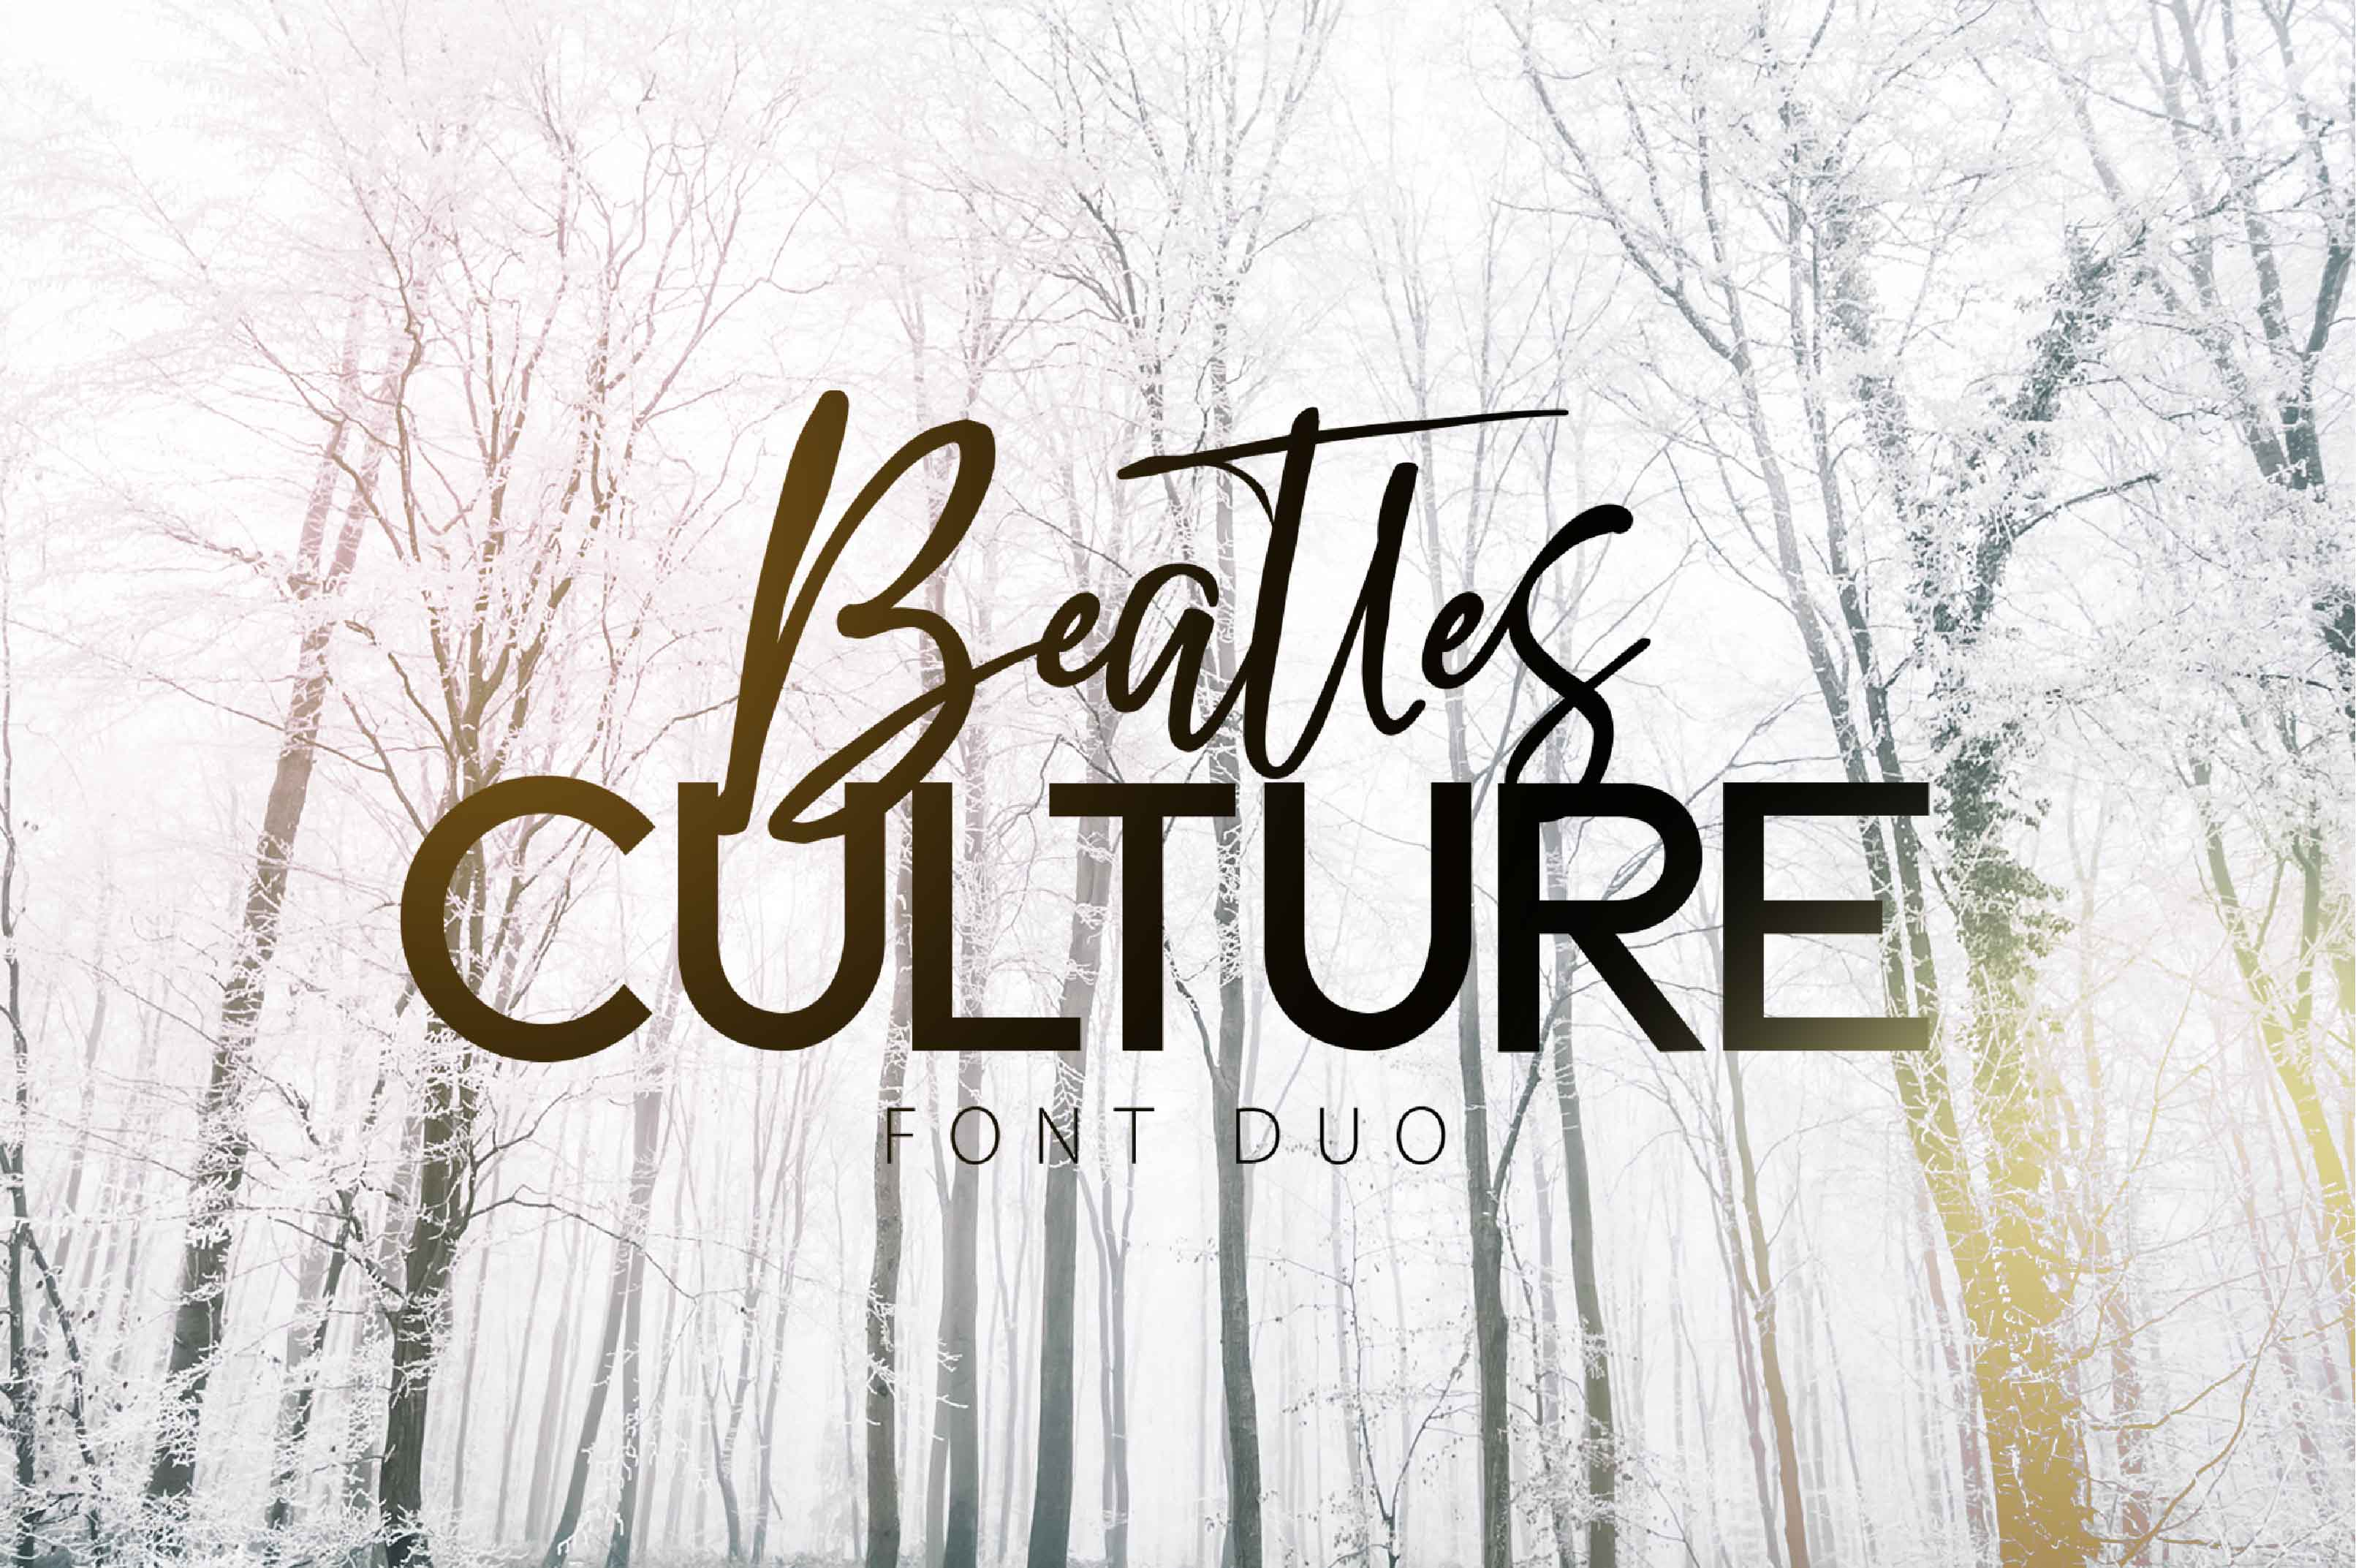 BEATLES CULTURE- Font Duo example image 1